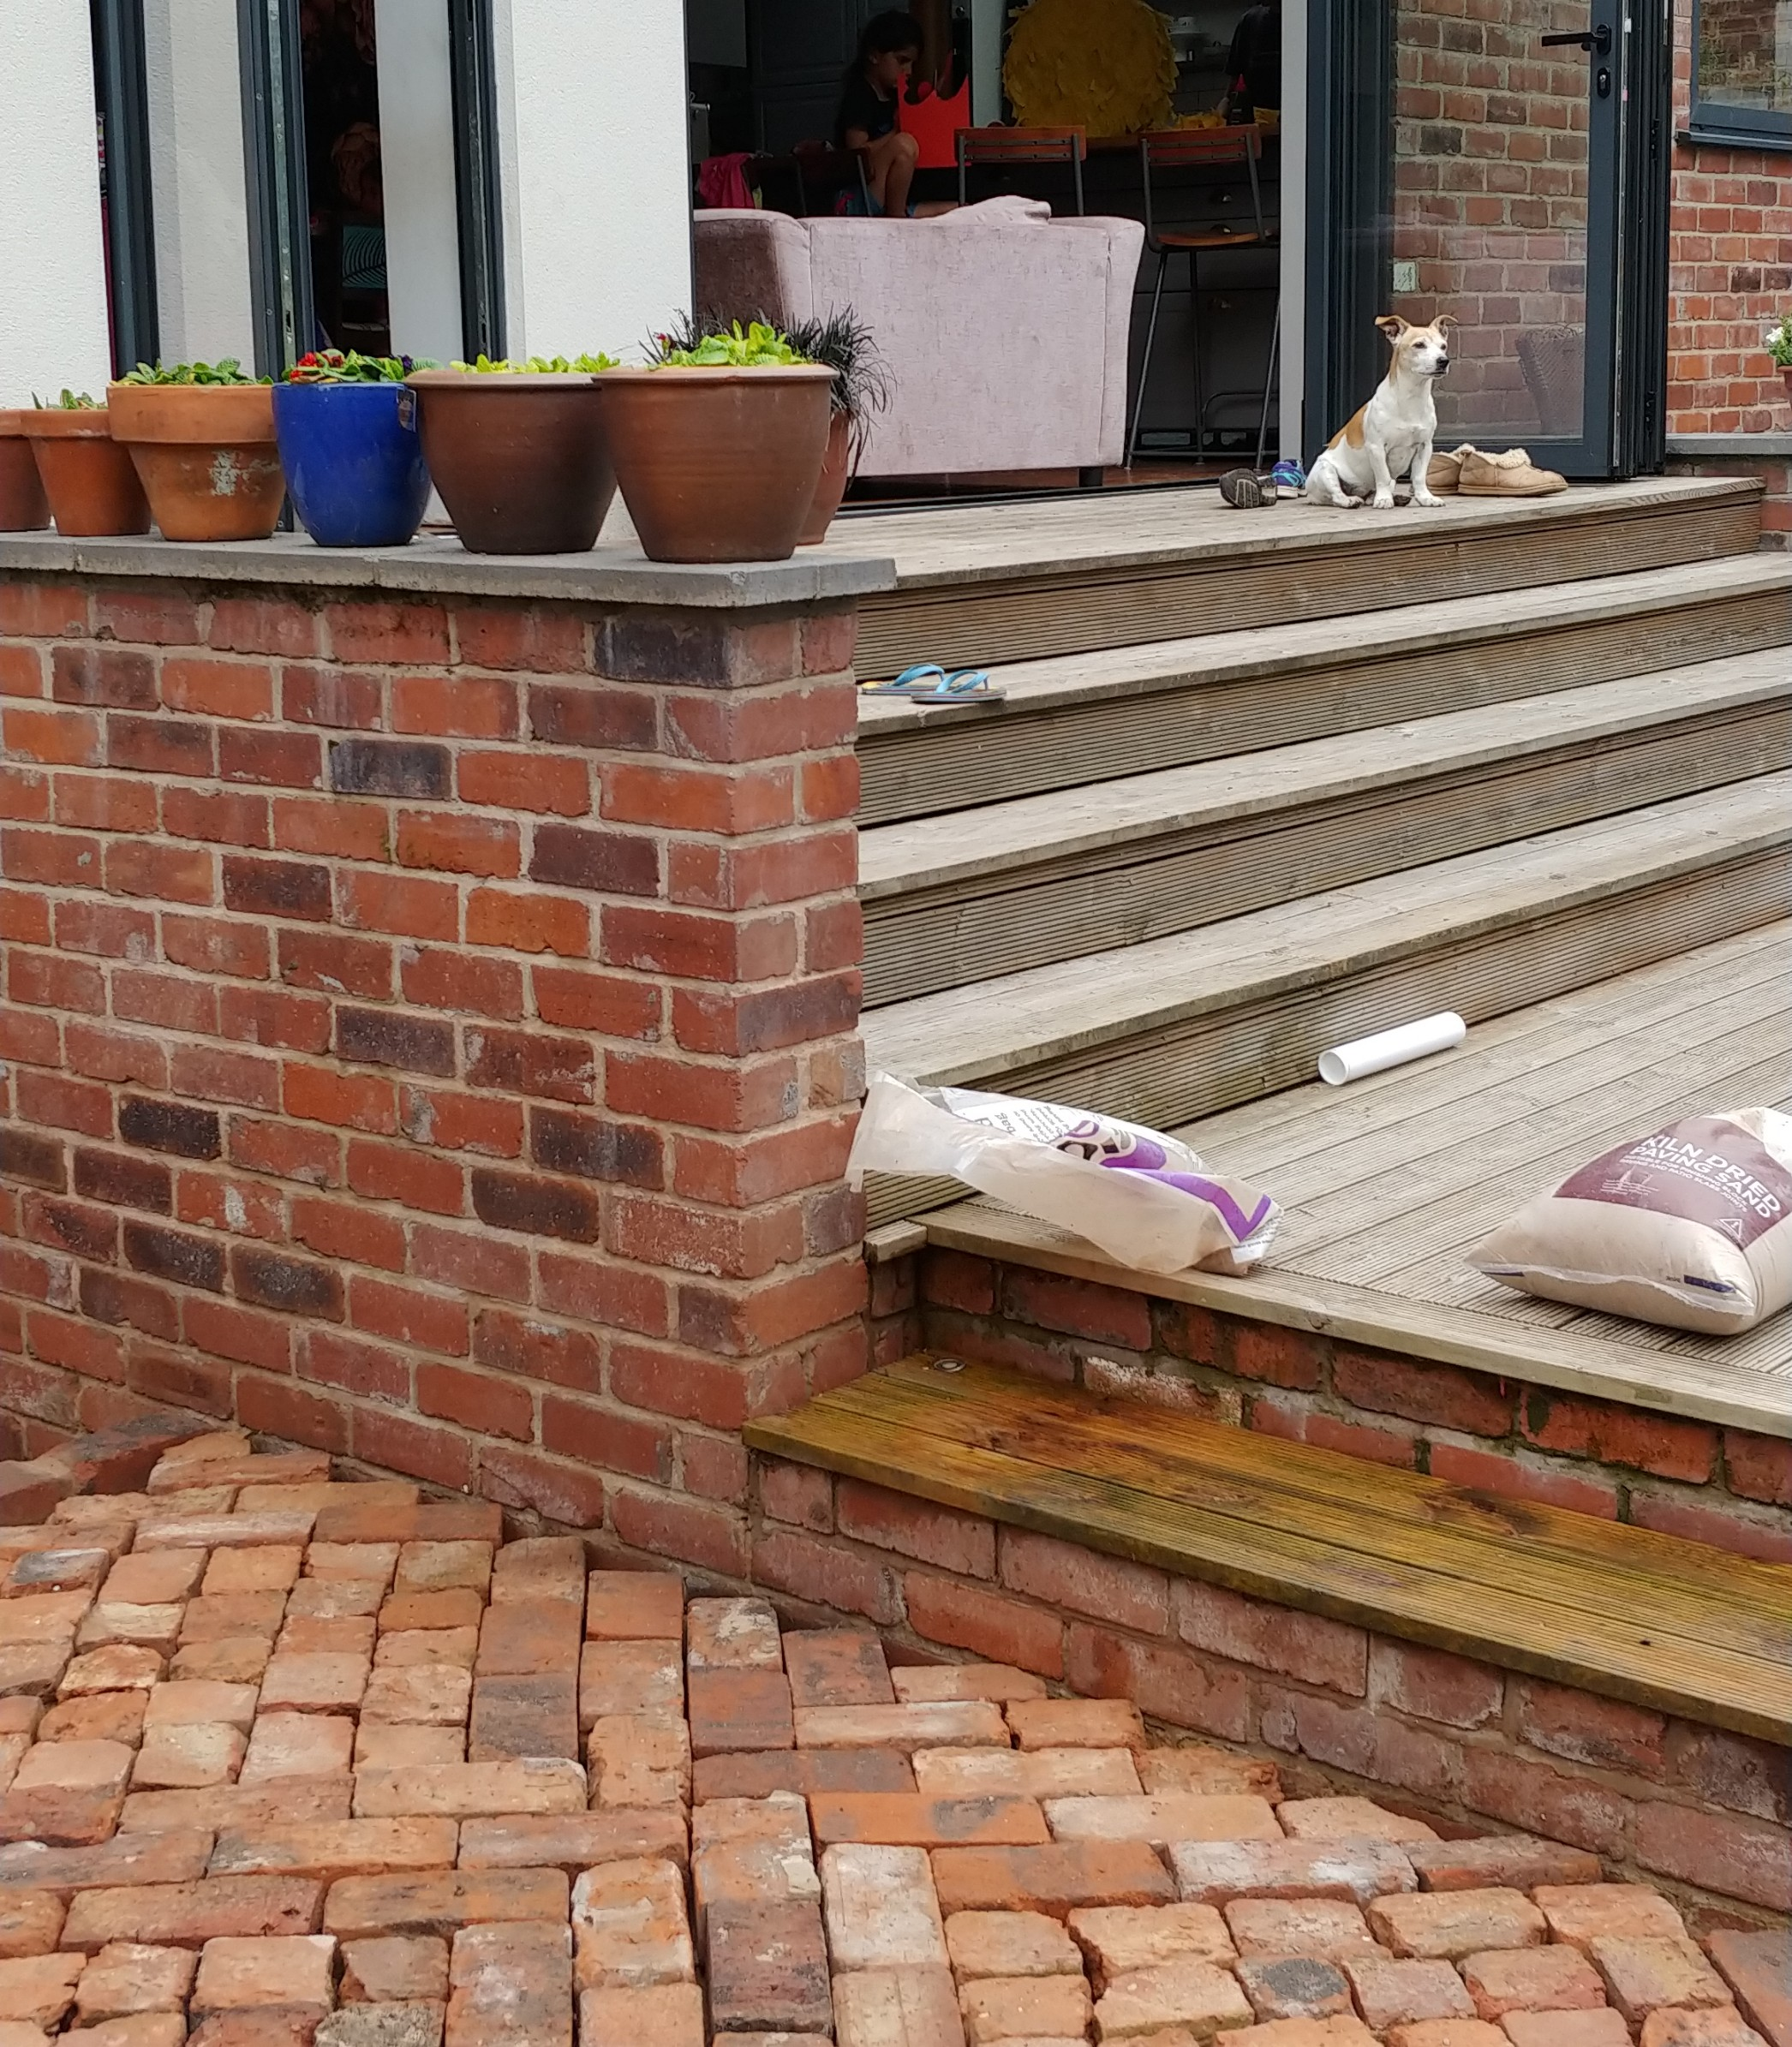 Our brick patio against our reclaimed brick wall (built by the builders) leading up to our main deck and bifolds.